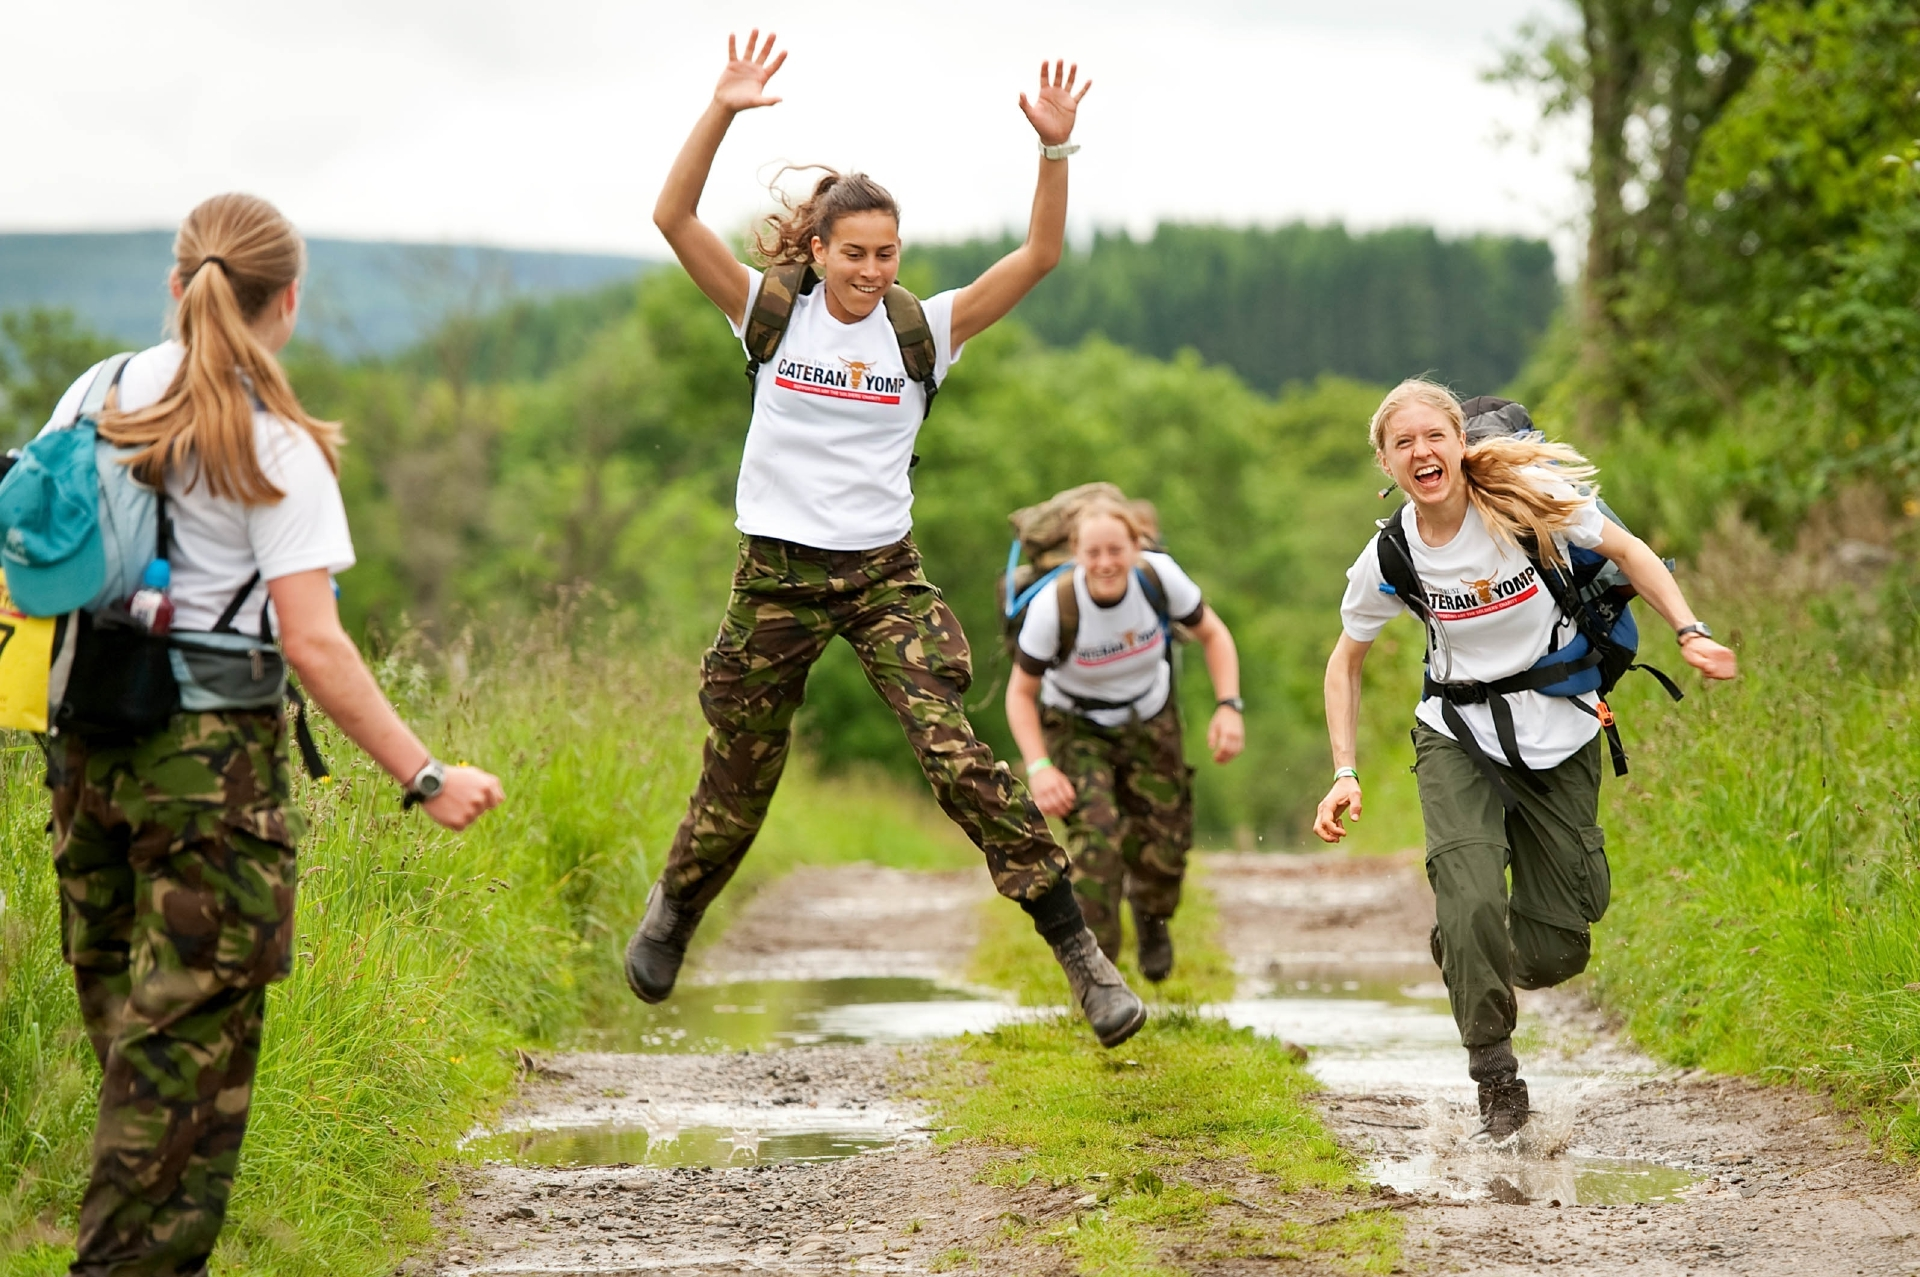 The Cateran Yomp is fantastic fun!